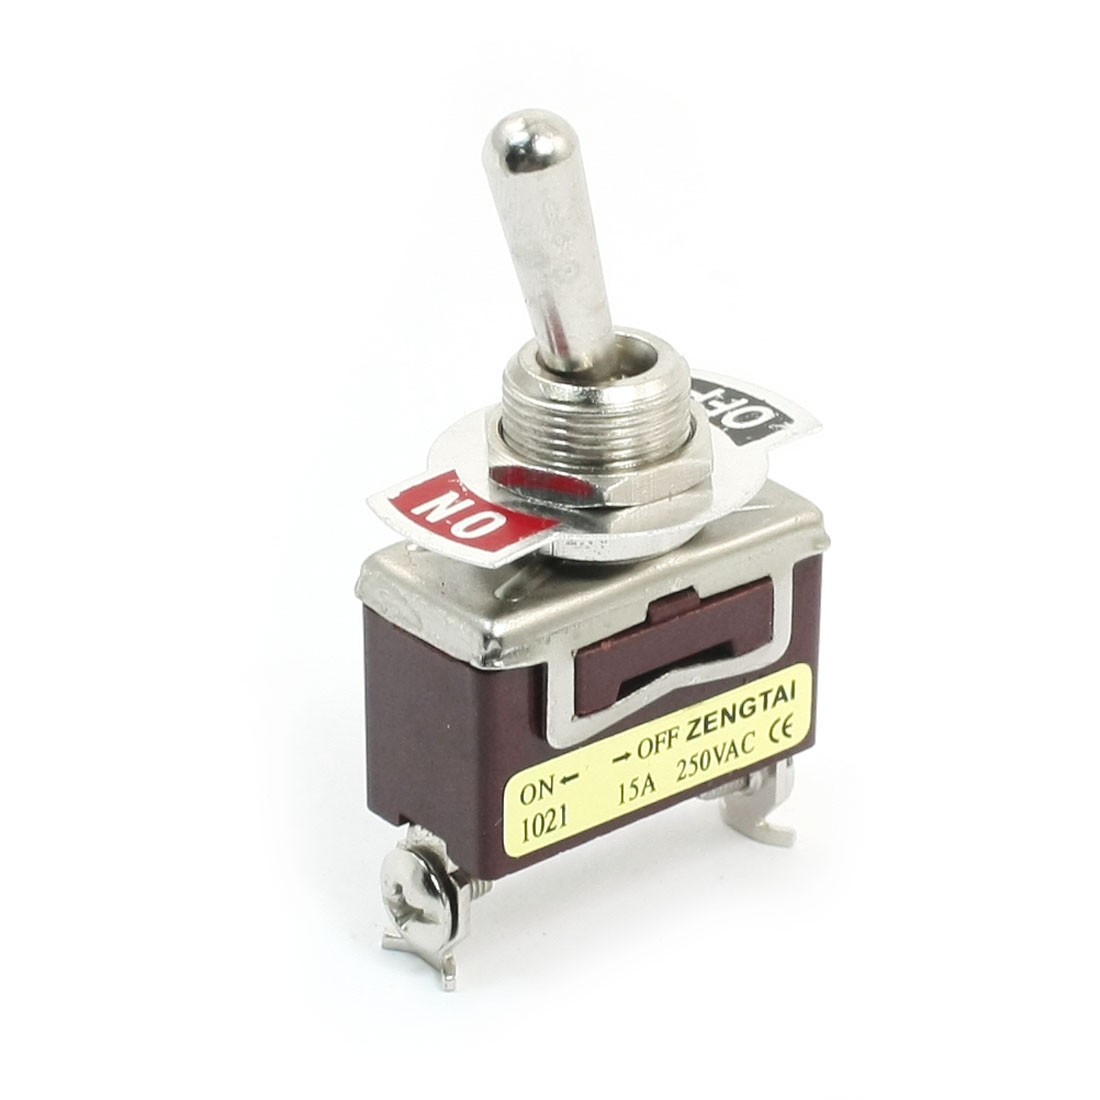 11mm Panel Mount SPST ON/OFF 2 Position Toggle Switch AC 250V 15A E-TEN1021